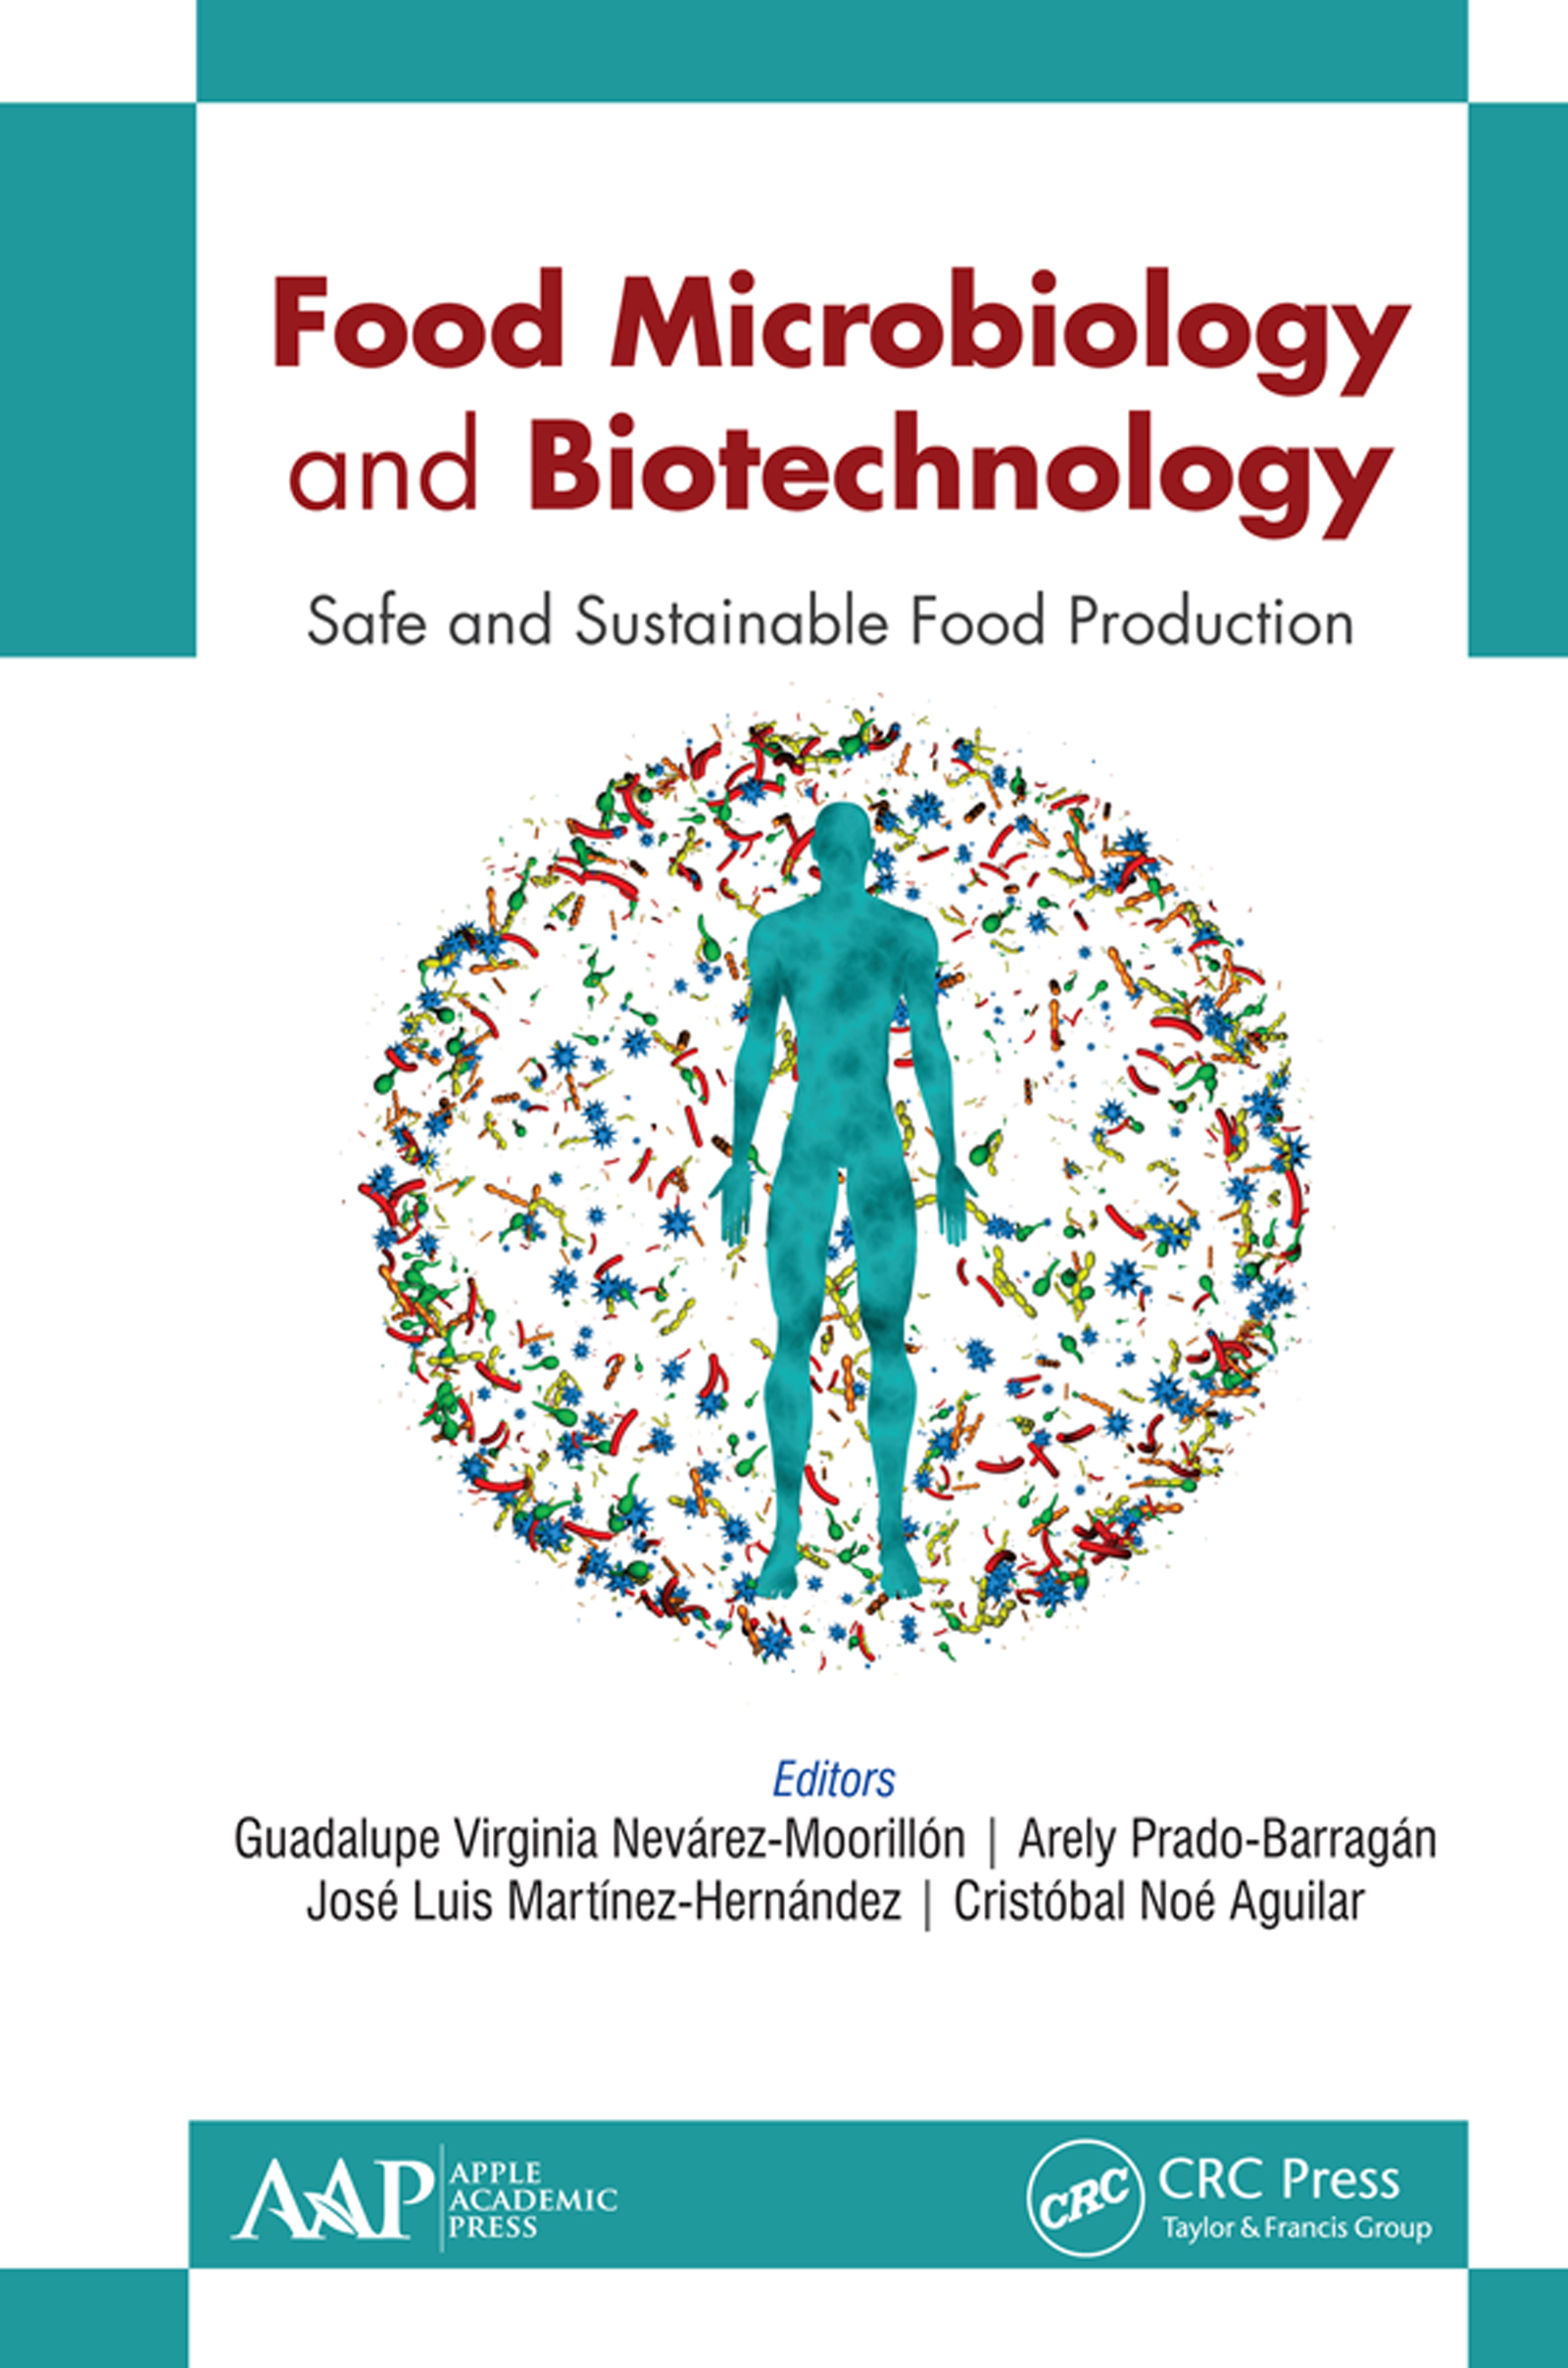 Fermentative Bioprocesses for Detoxification of Agri-Food Wastes for Production of Bioactive Compounds